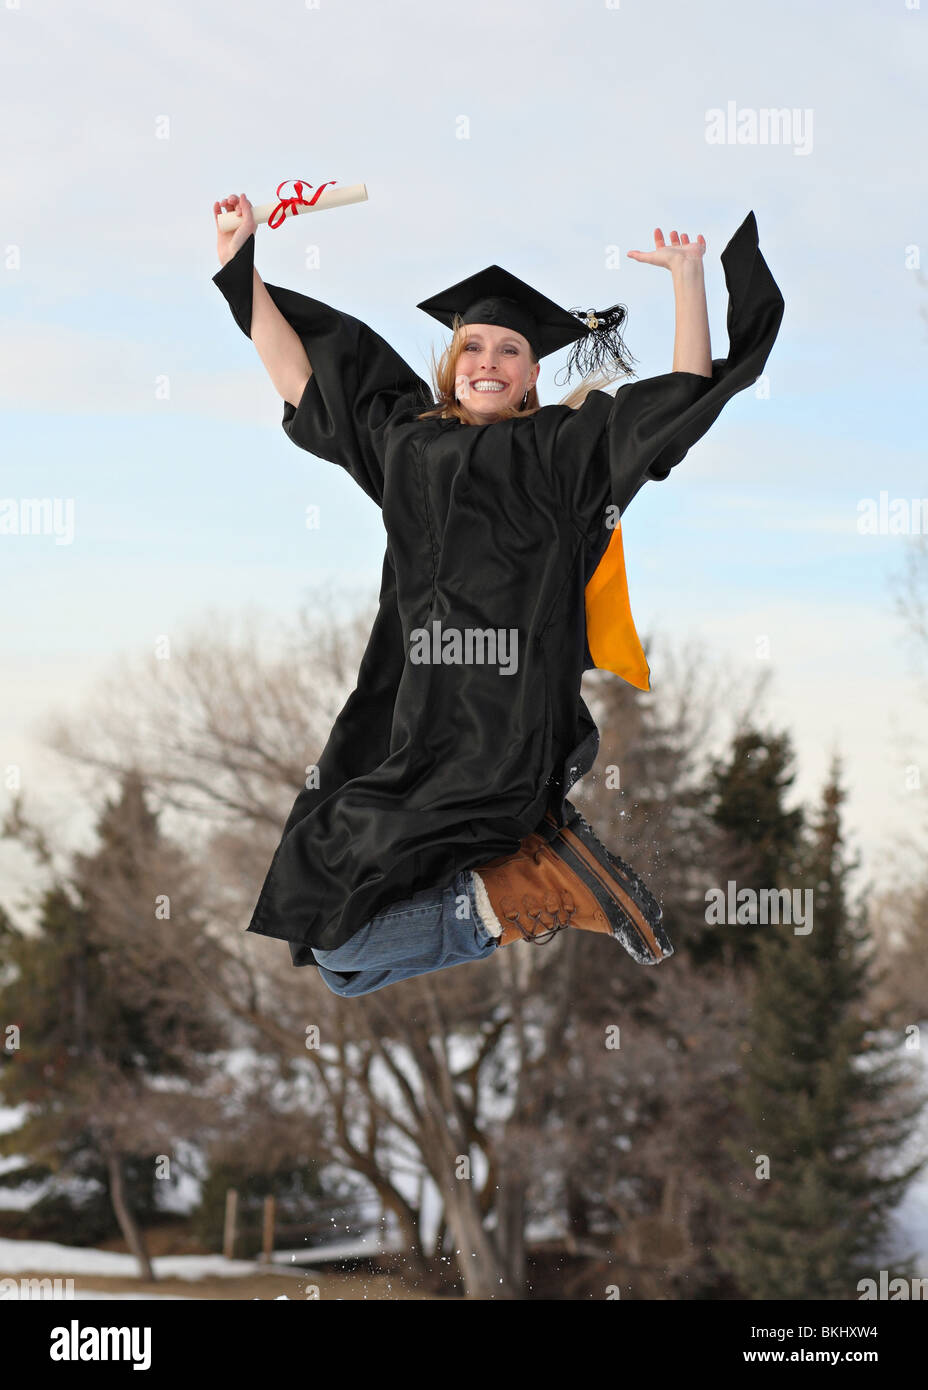 excited blond woman in graduation outfit and diploma outdoors in winter jumping high in the air - Stock Image